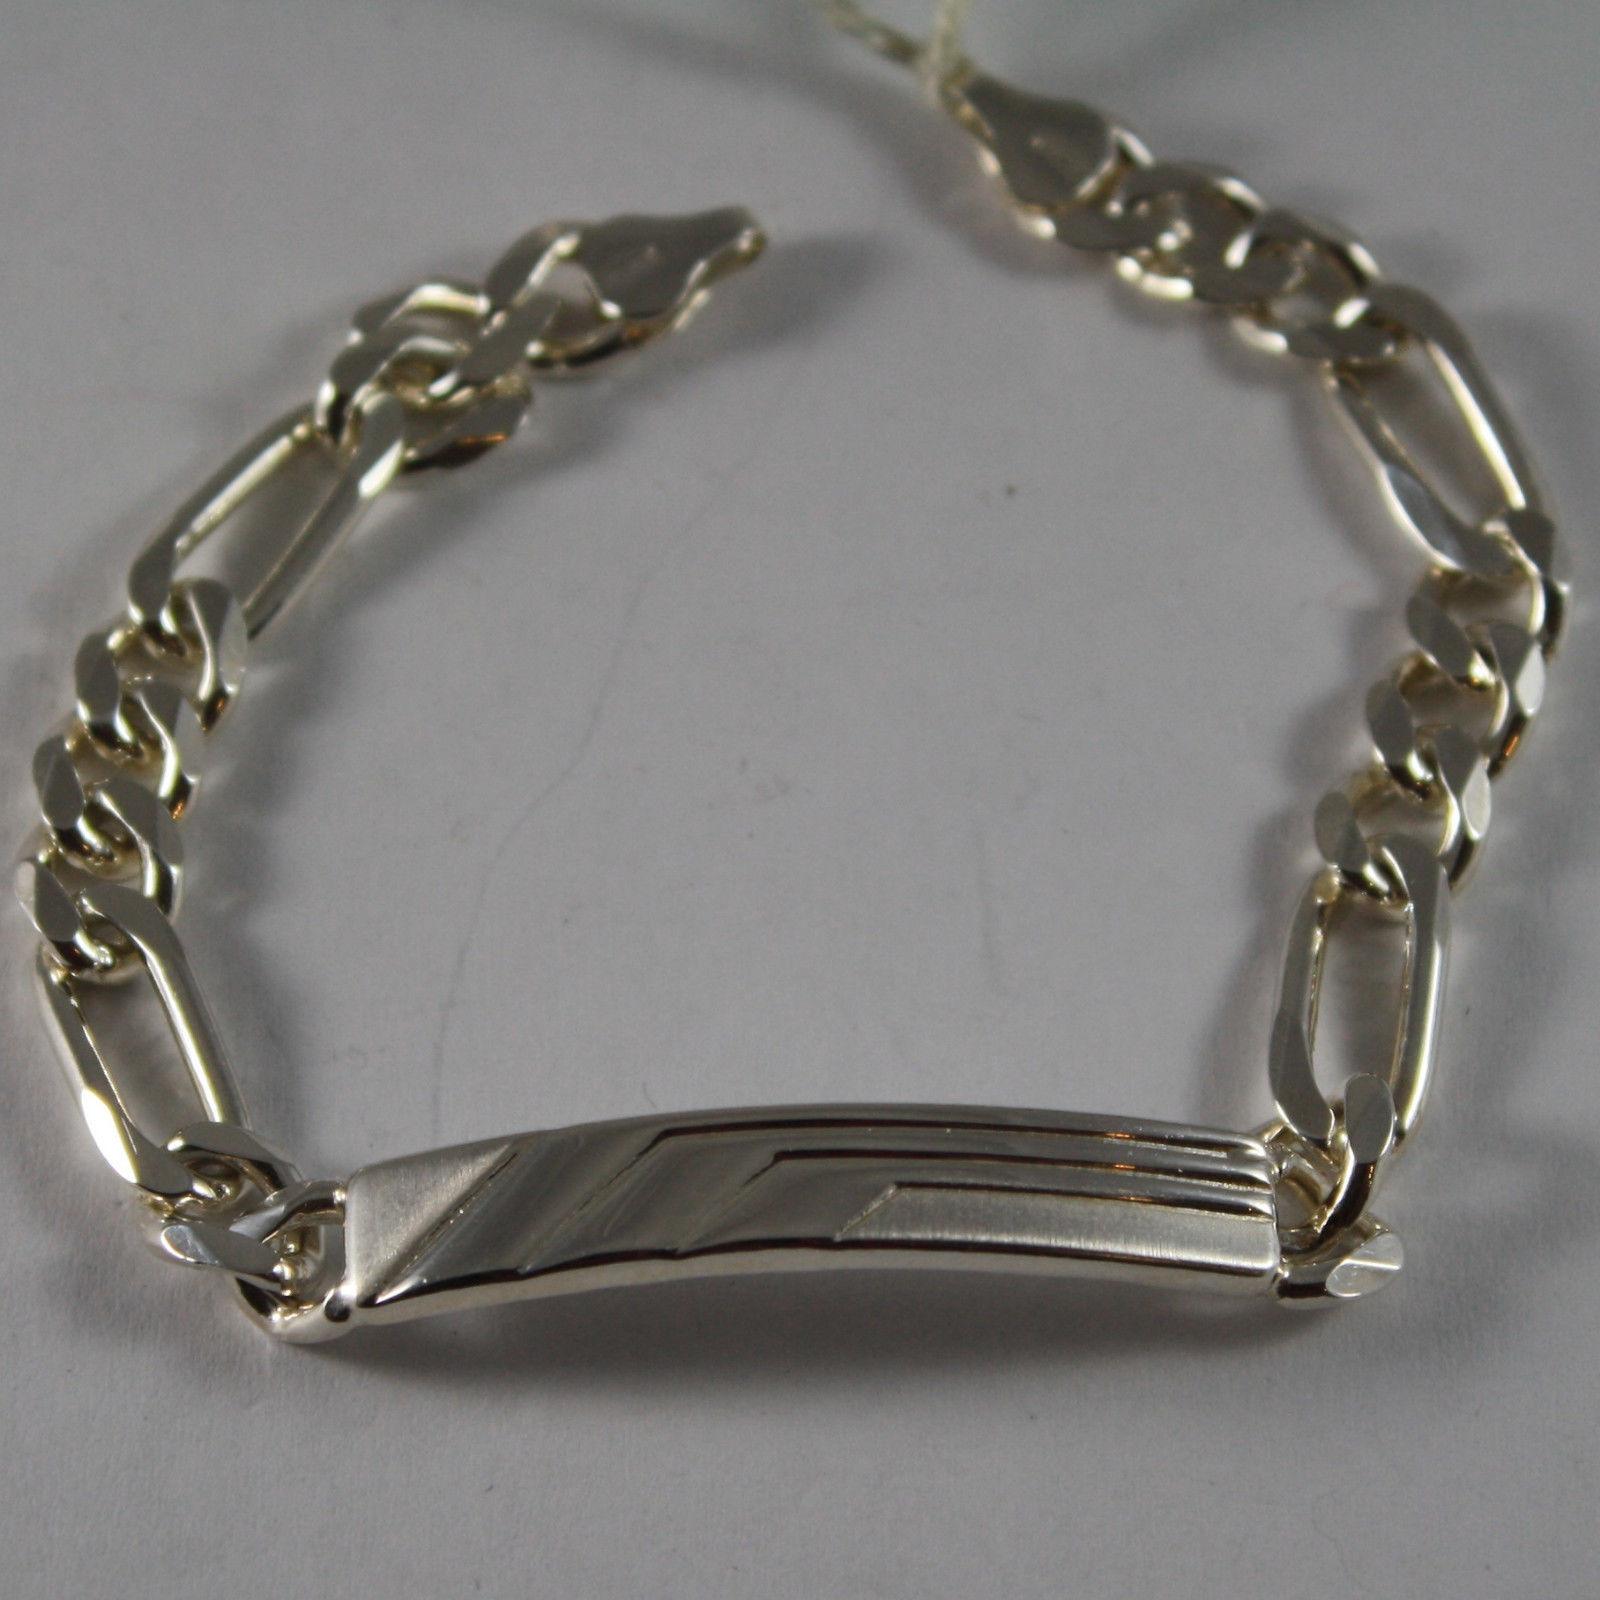 .925 RHODIUM SILVER BRACELET WITH CENTRAL PLATE